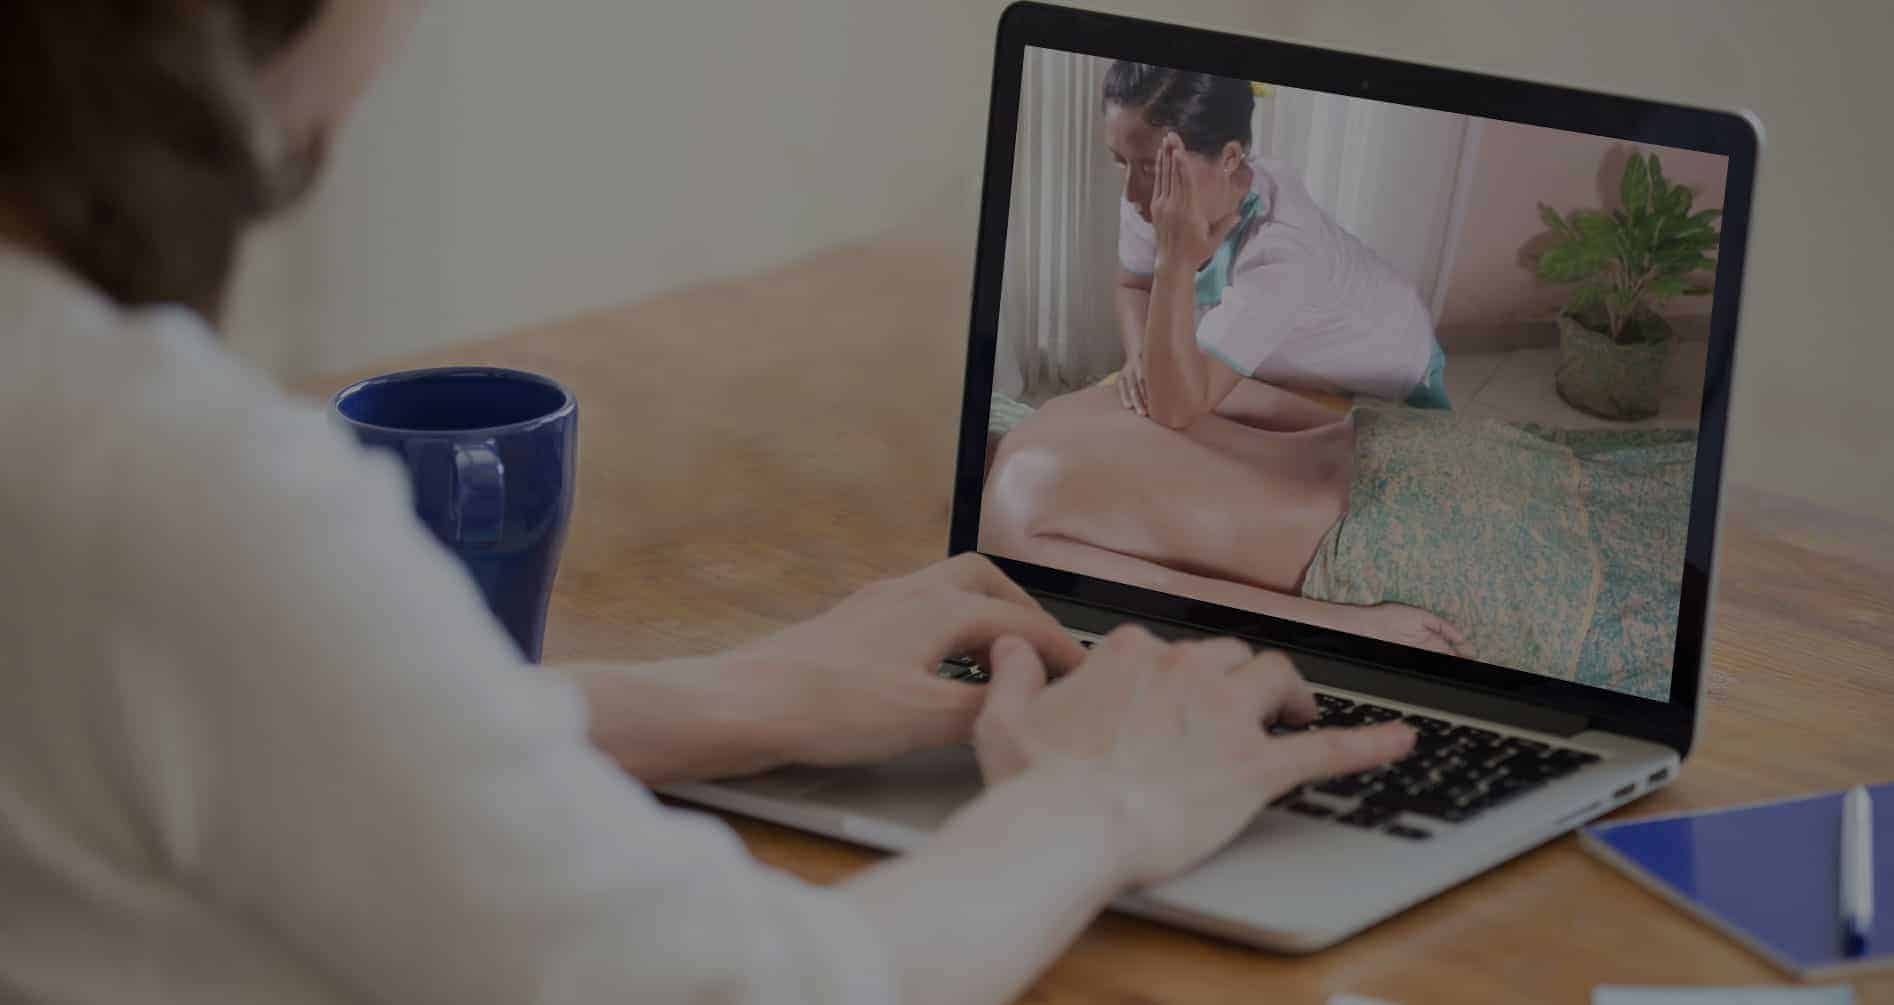 A woman play massage training video on her laptop